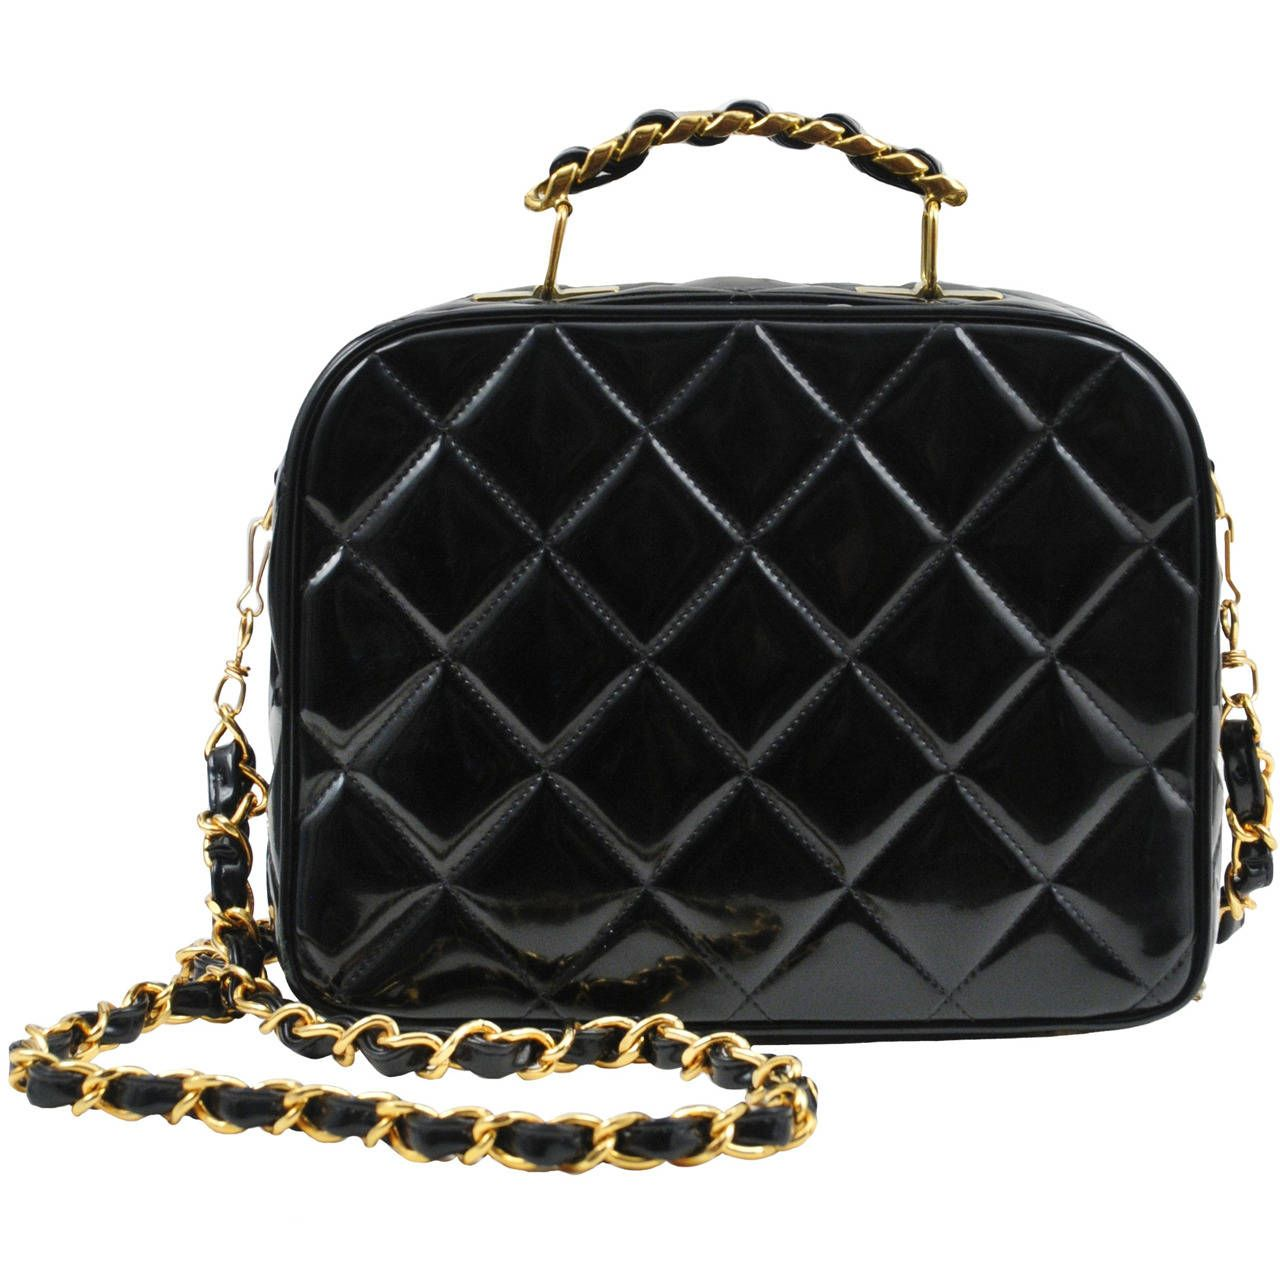 69ec697a3971 Chanel Black Patent Lunch Box Tote | From a collection of rare vintage  handbags and purses